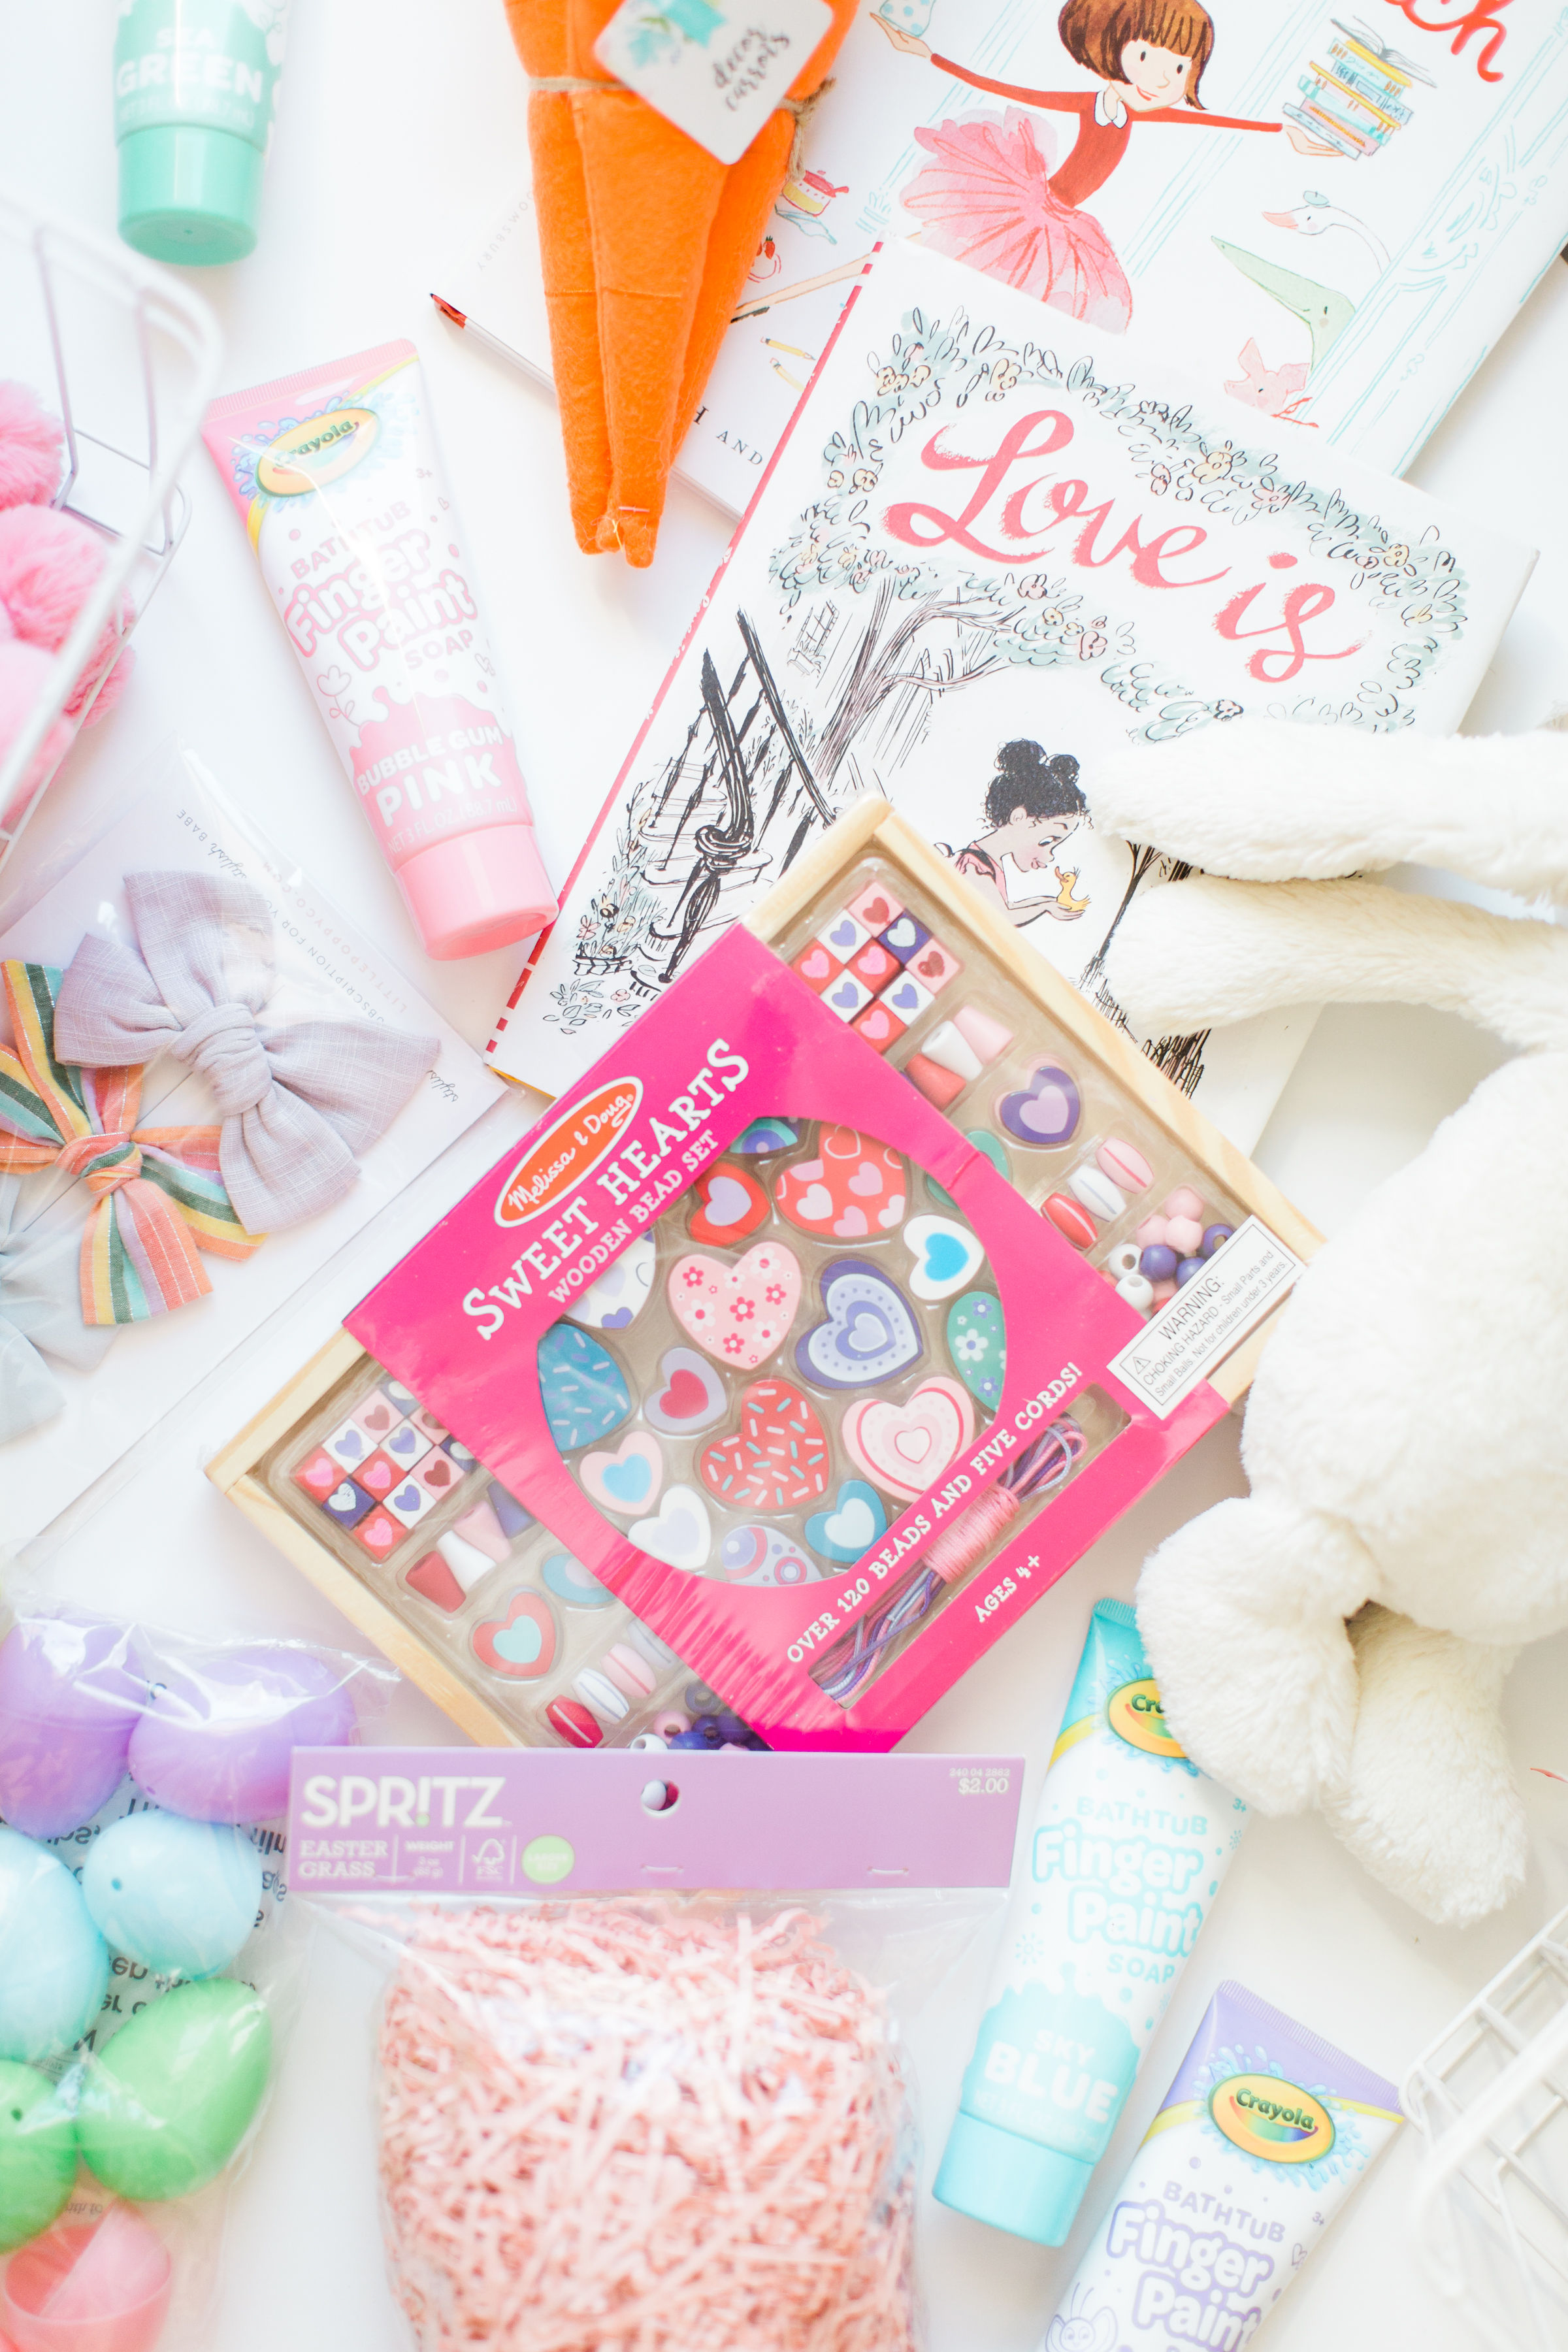 Now let's get to it: here's exactly what we put in our little girls' Easter baskets this year.